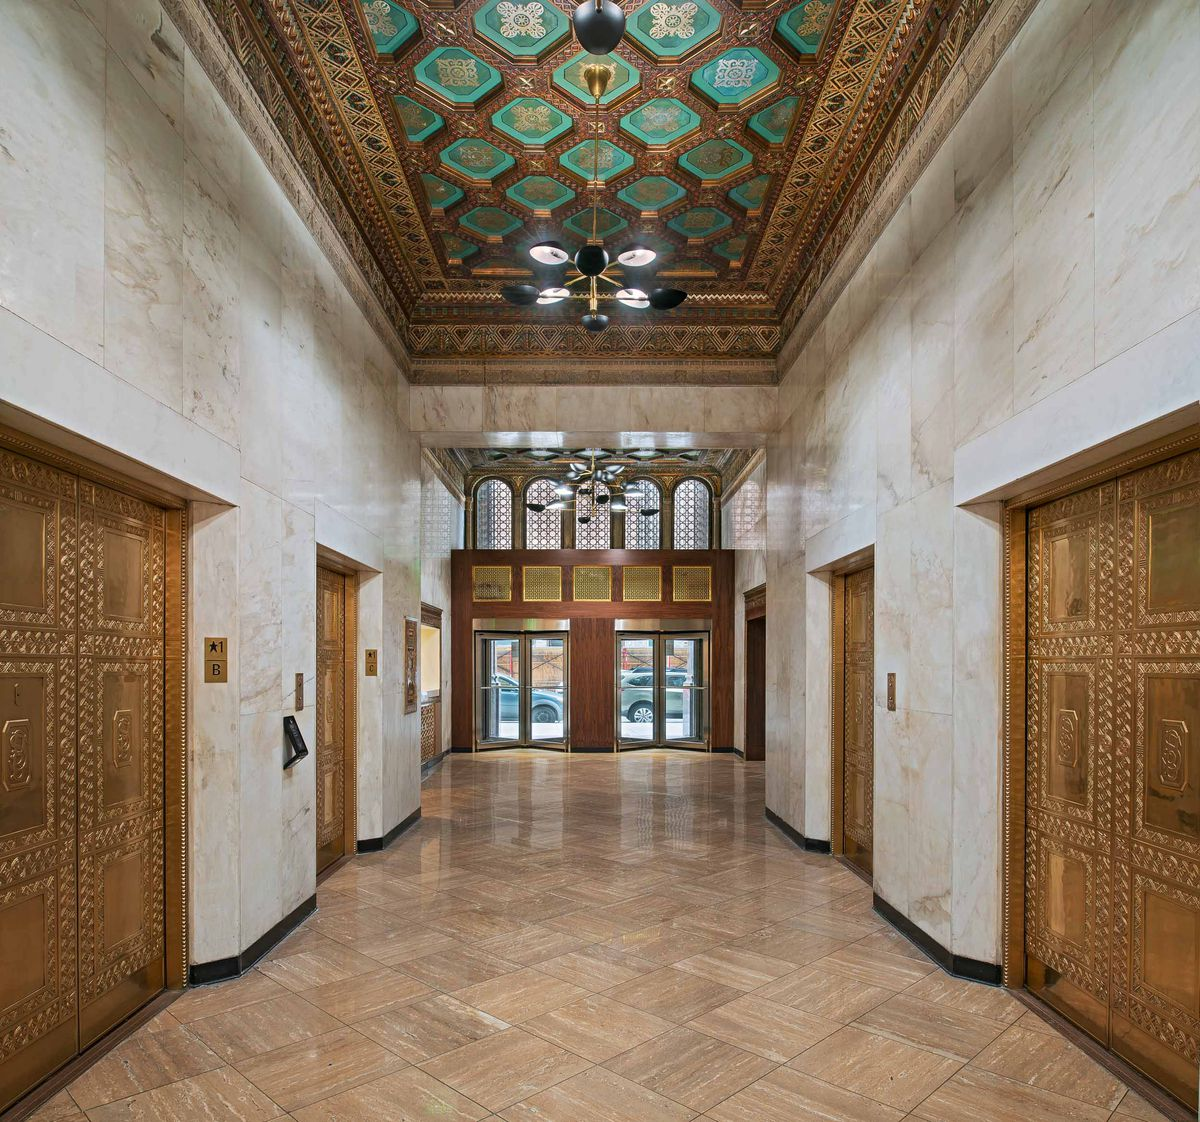 A hallway with four golden elevators on a brown marble floor with white marble walls. Above is a green- and gold-paneled ceiling.